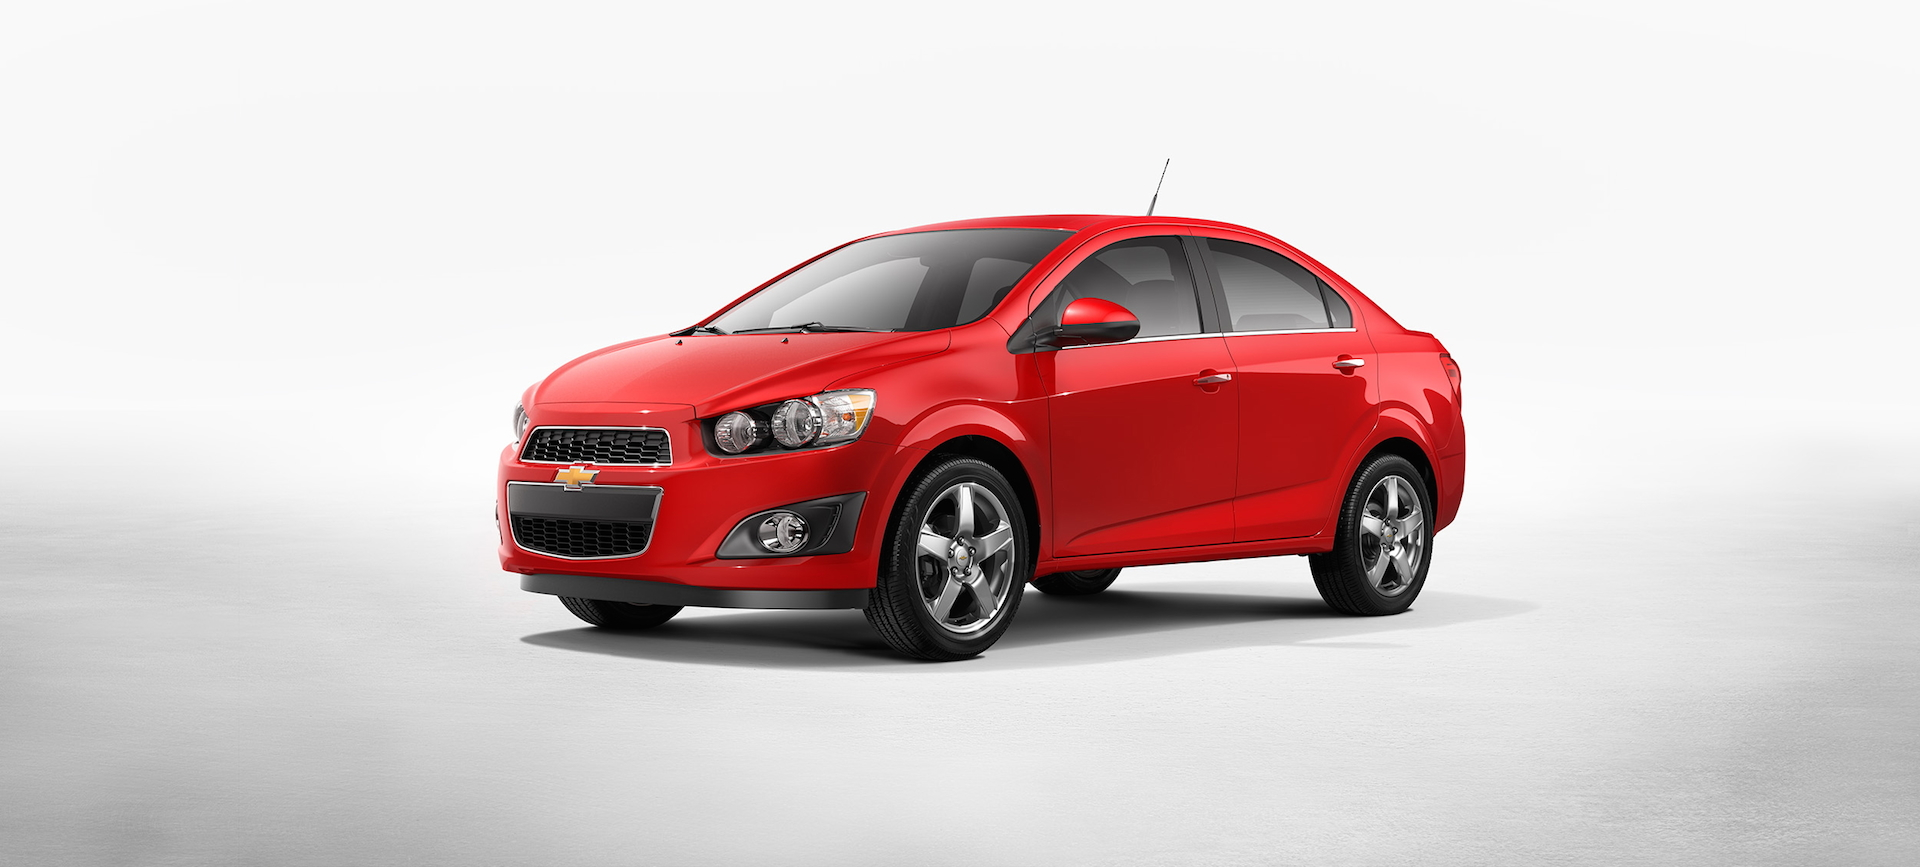 2015 Chevrolet Sonic Chevy Review Ratings Specs